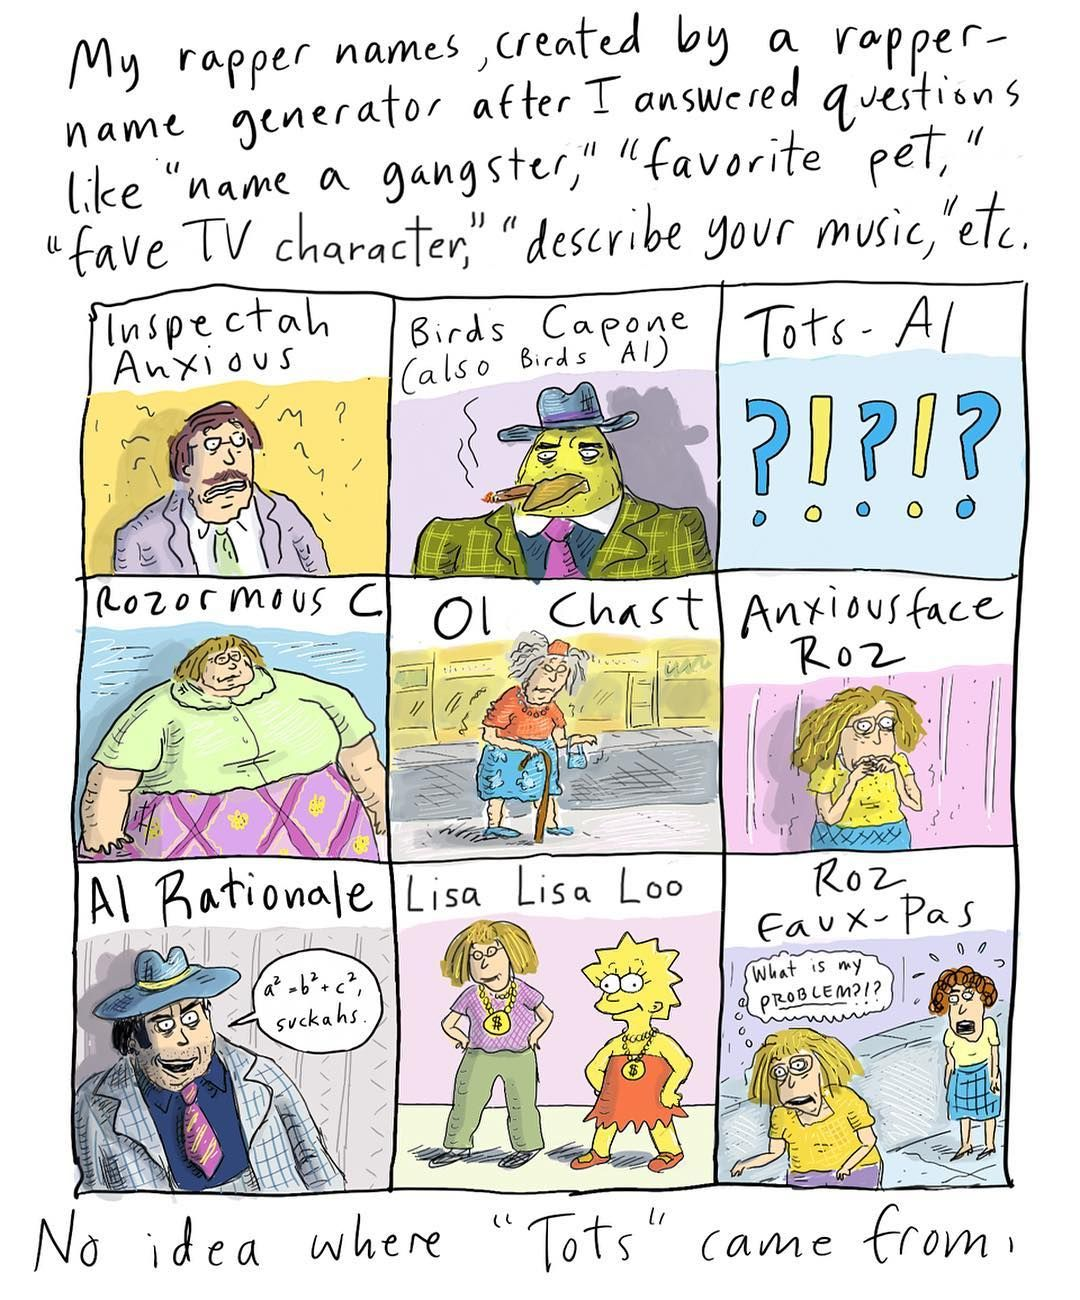 Rozchast Birds Capone Roz Chast Birds Character